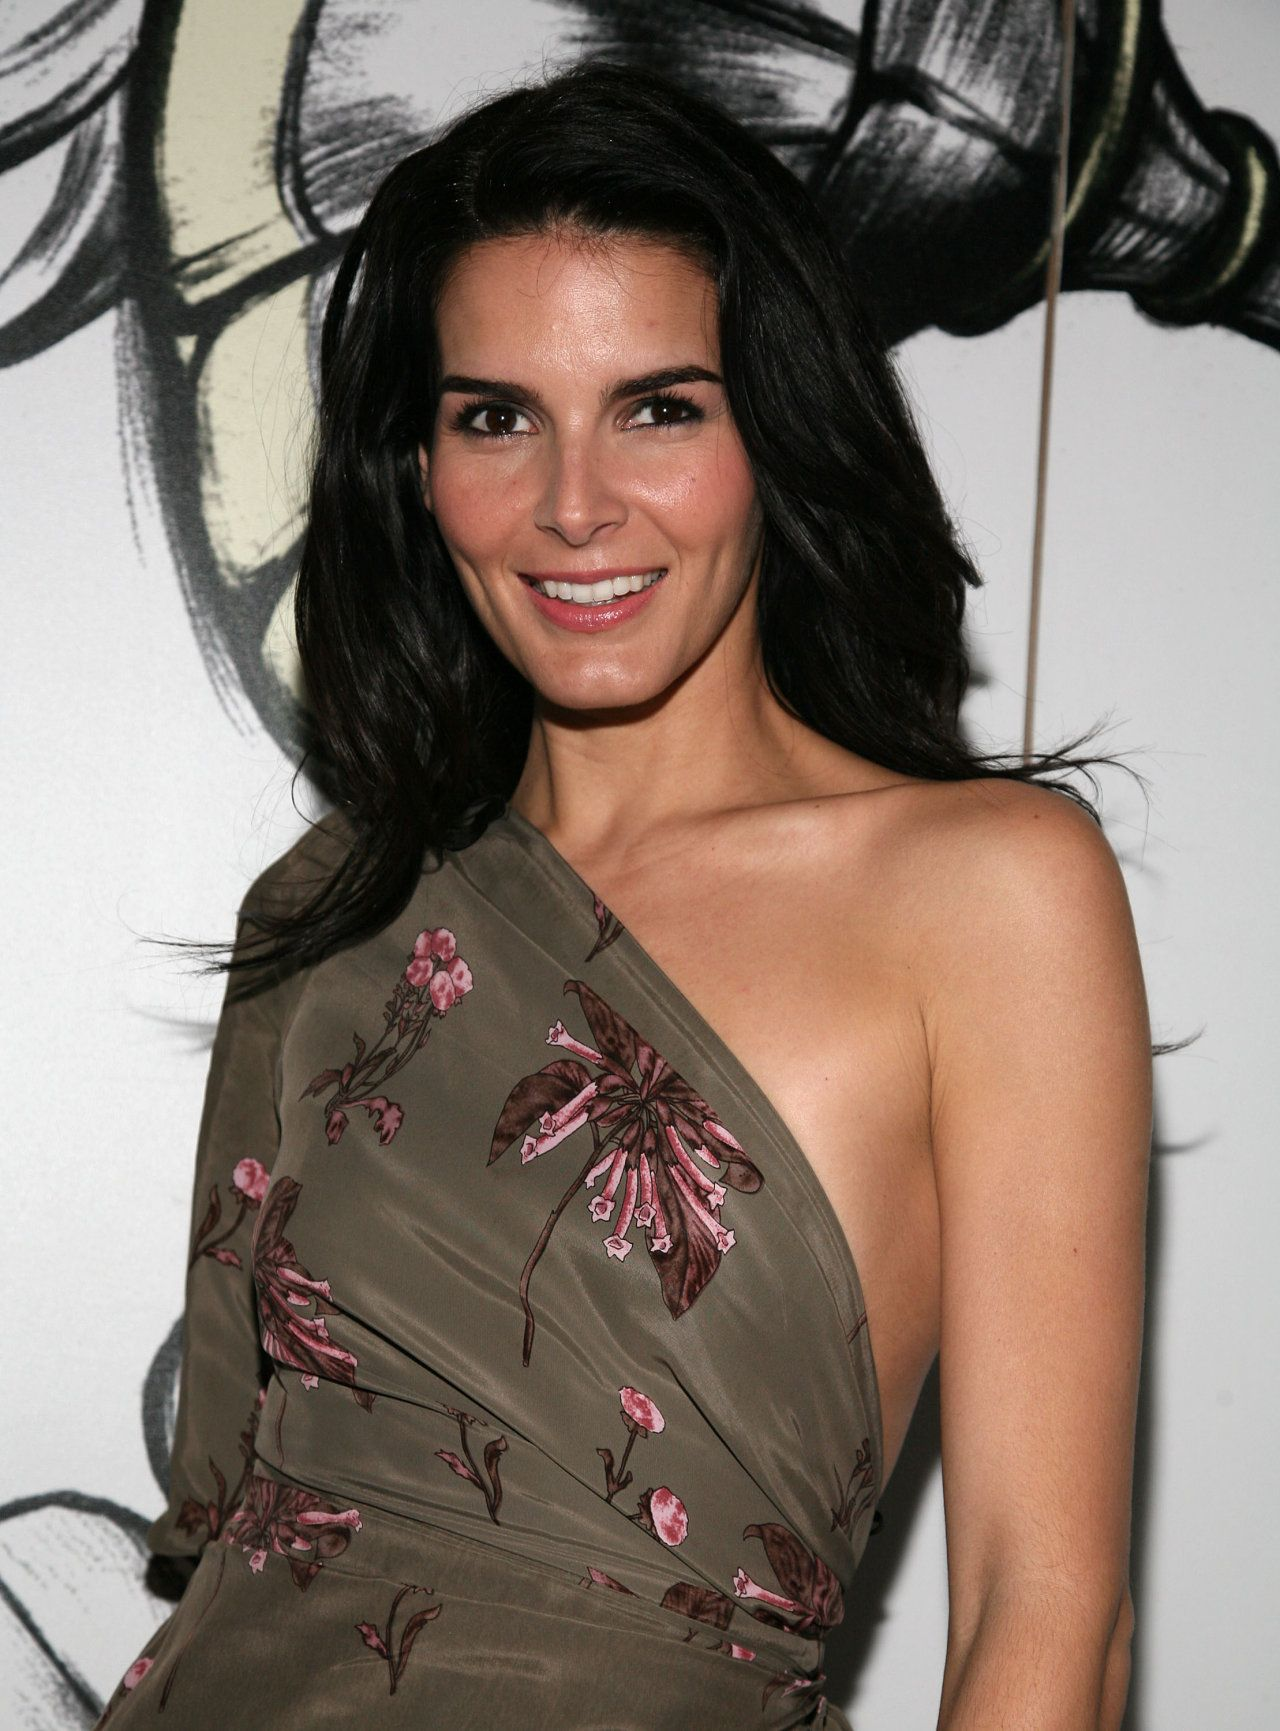 Angie Harmon born August 10, 1972 (age 46)